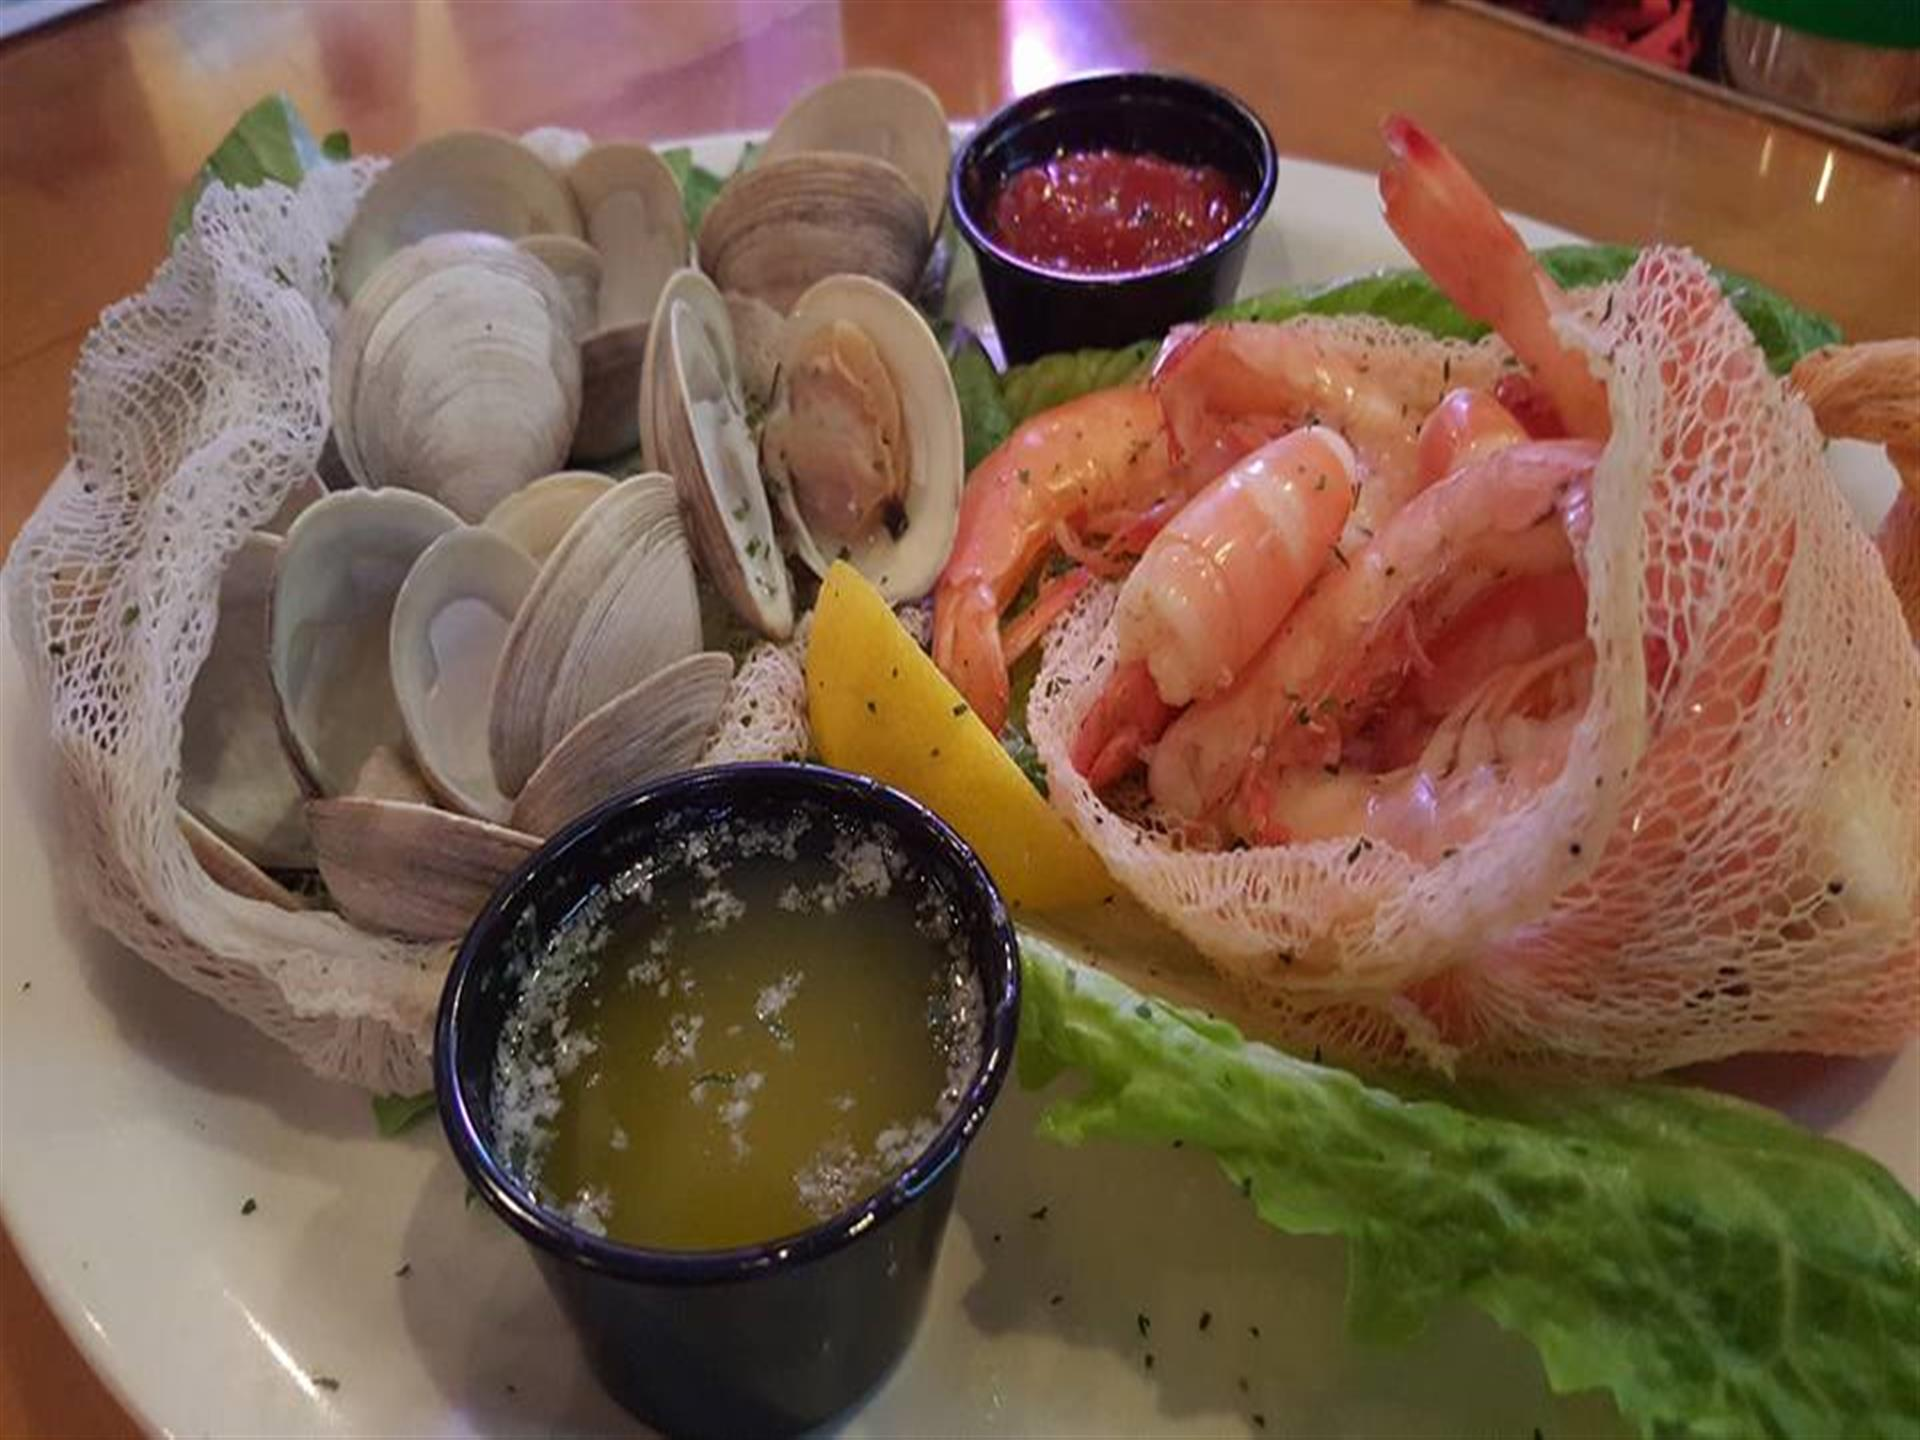 Clams and shrimps with 2 different dipping sauces